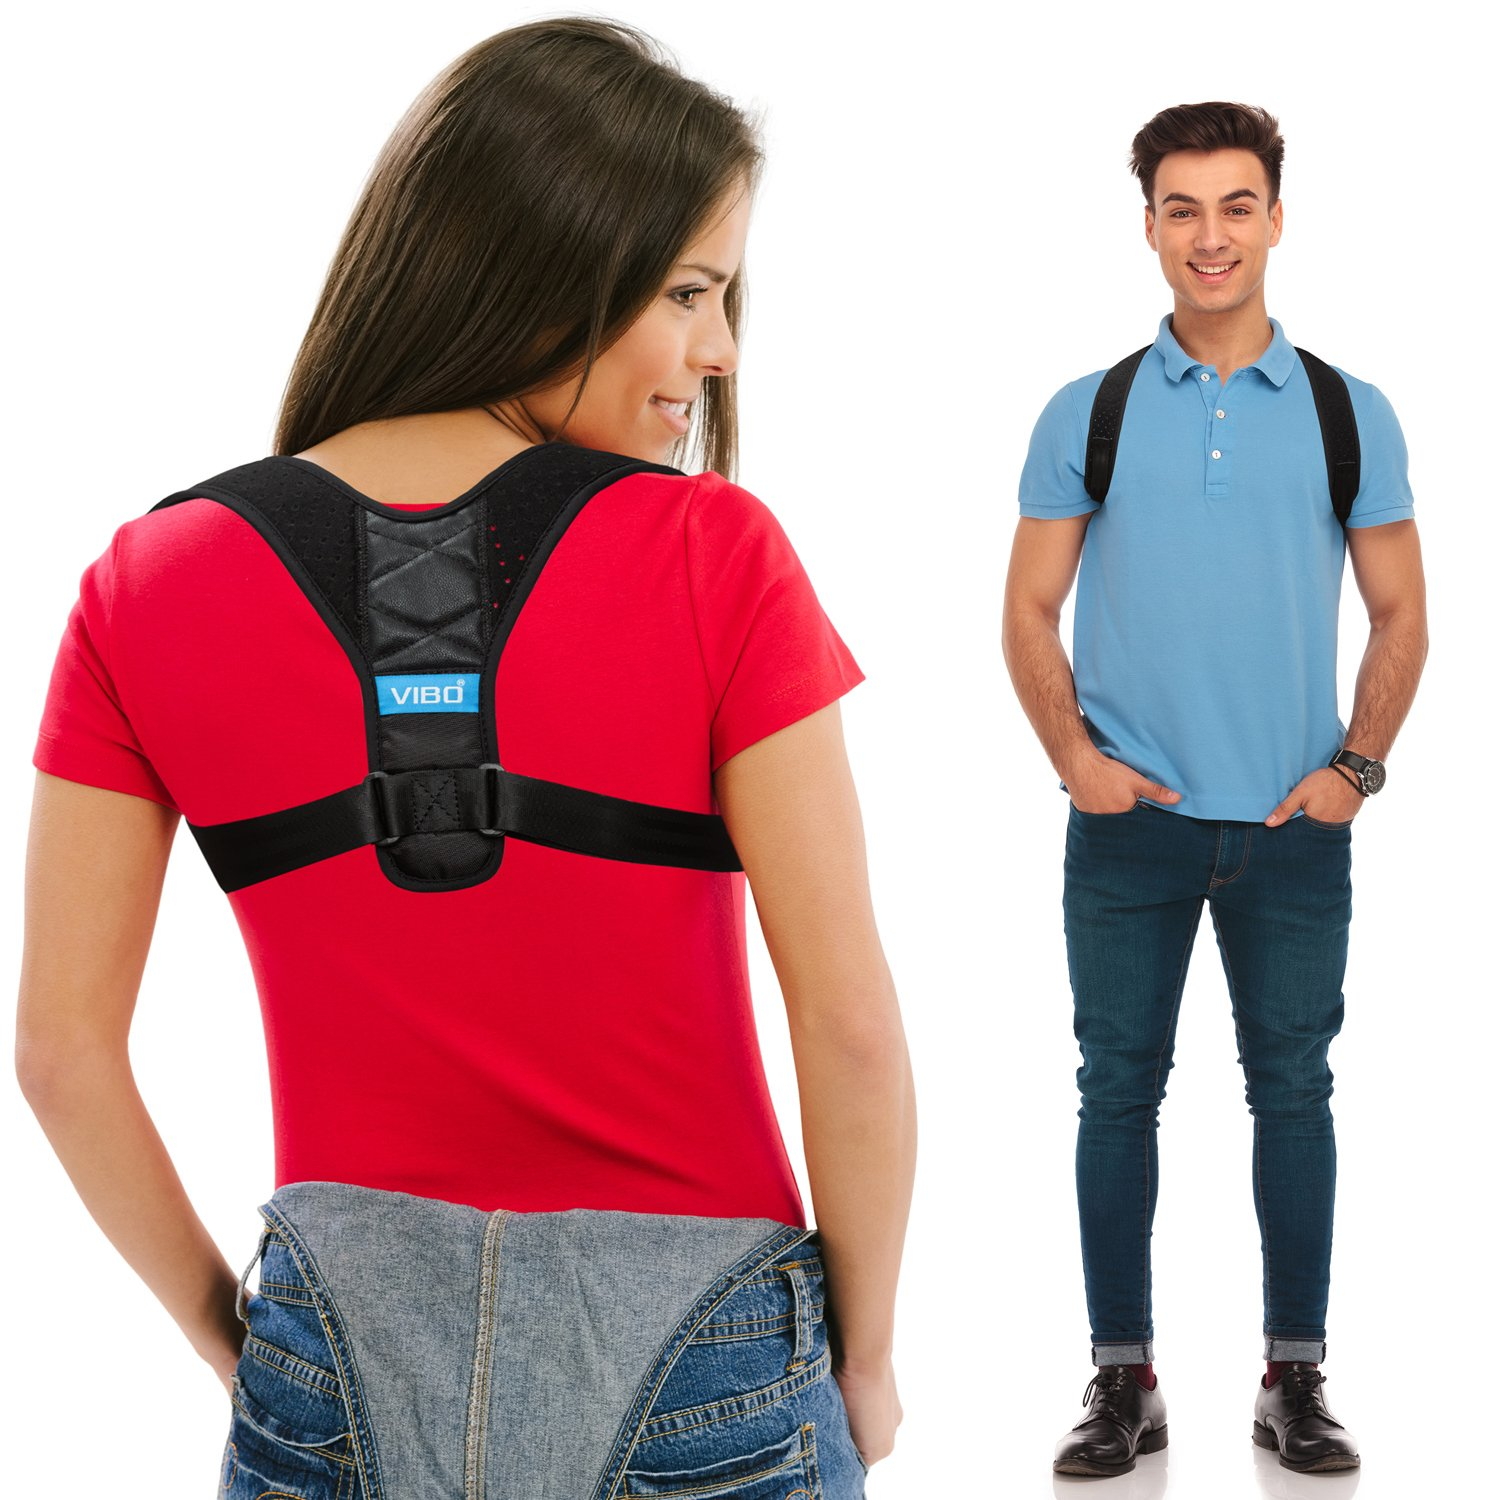 posture corrector for men and women gifts for good health